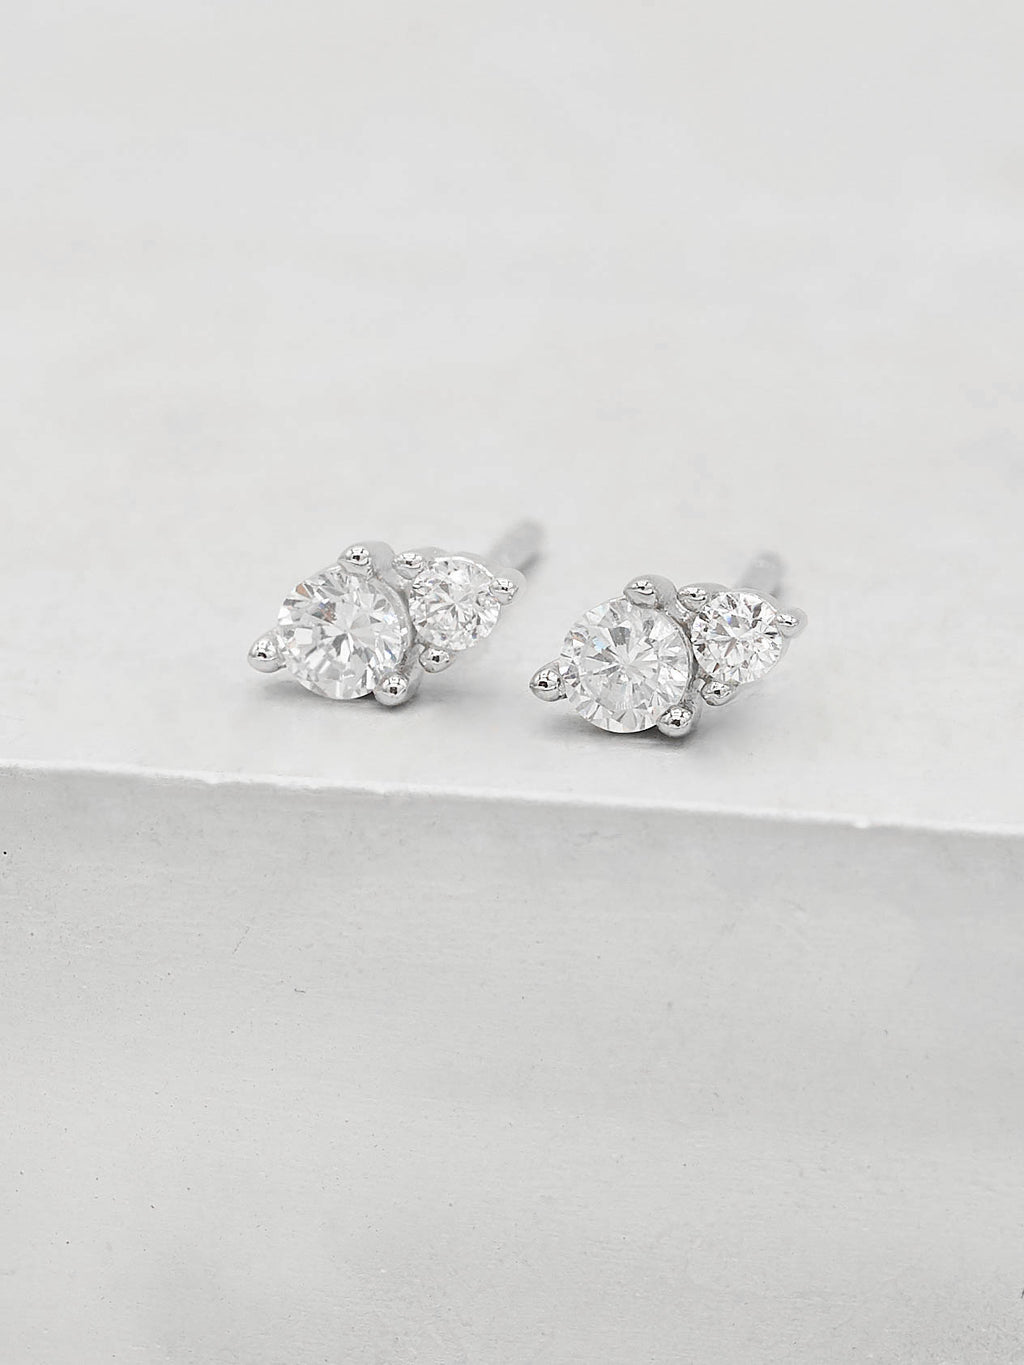 2 Stone Round Shape White CZ Silver Stud Earrings by The Faint Hearted Jewelry